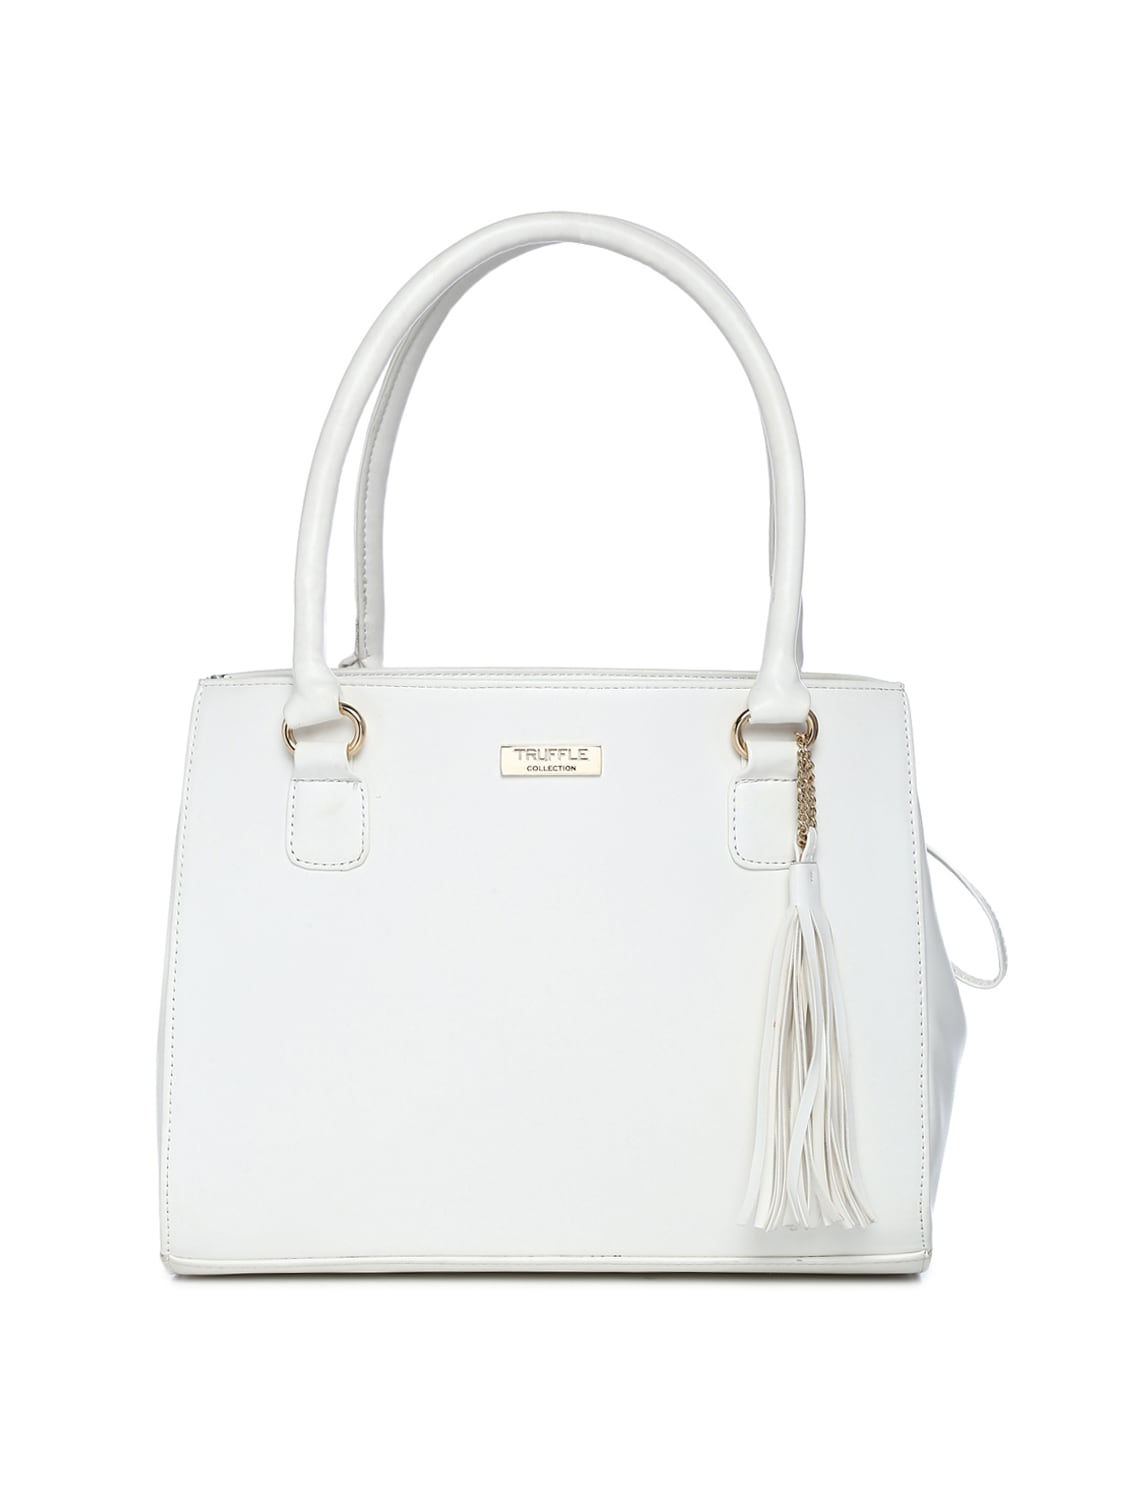 6f4b4116ea8 Buy White Leatherette (pu) Regular Handbag by Truffle Collection - Online  shopping for Handbags in India